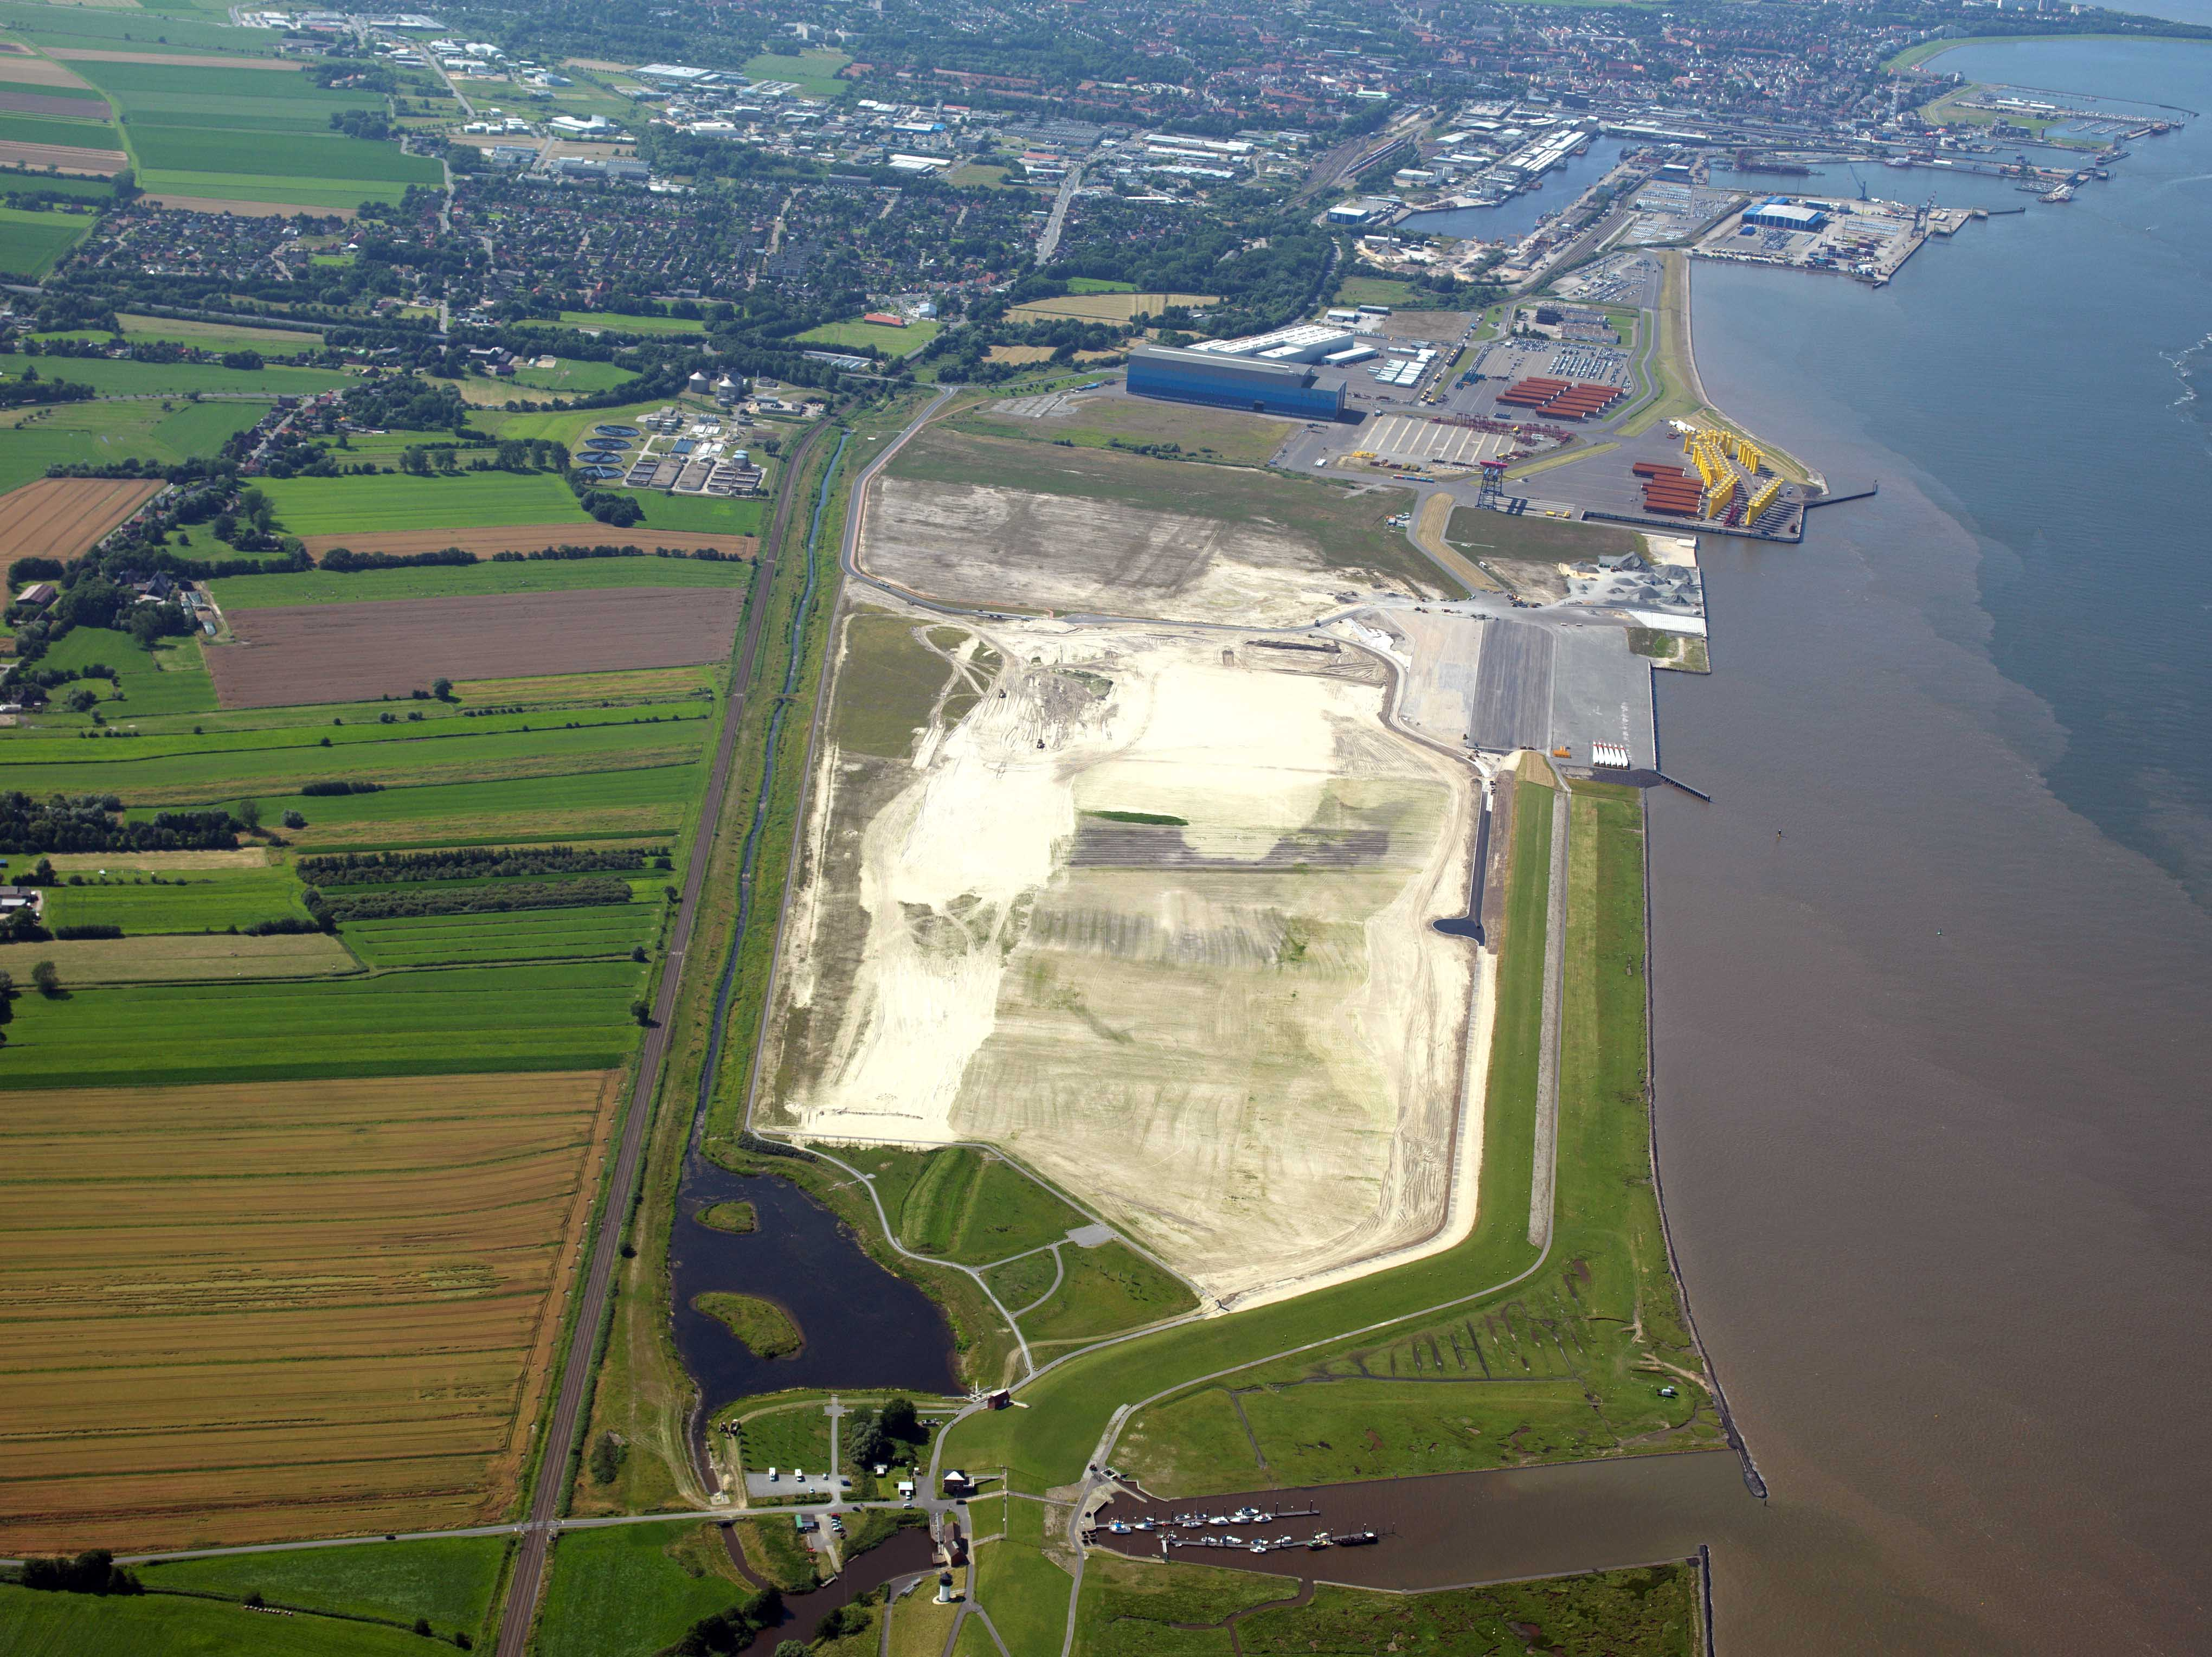 Port of Cuxhaven industrial zones, copyright: City of Cuxhaven